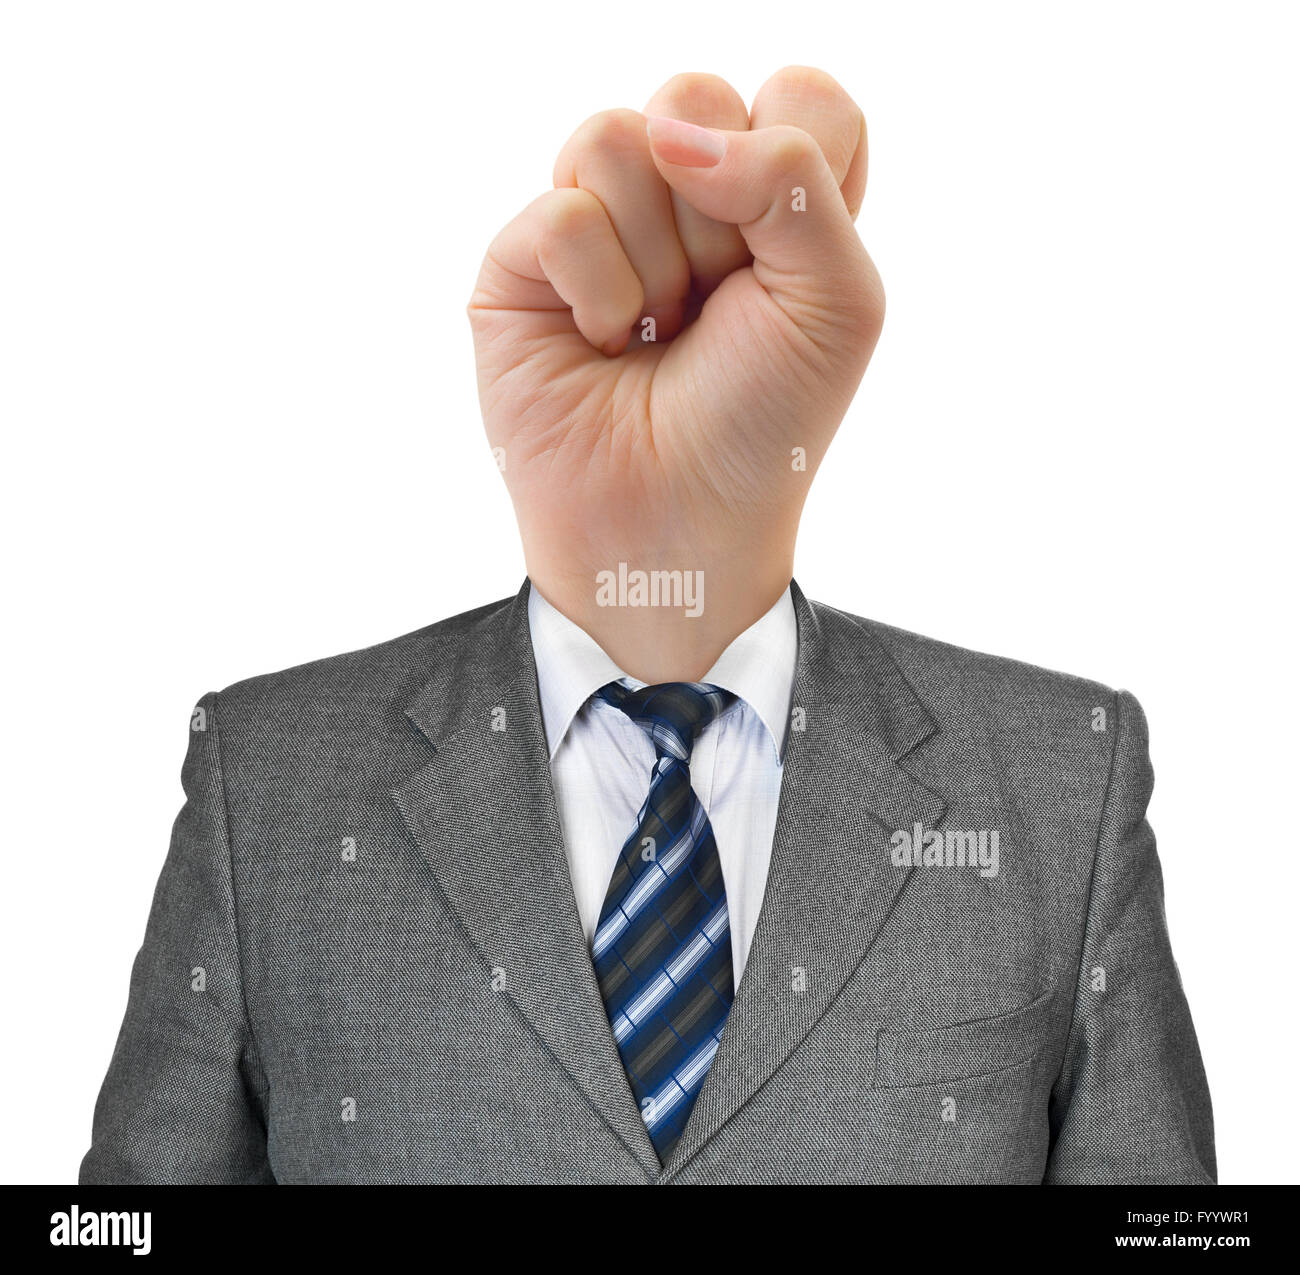 Fist for head - Stock Image